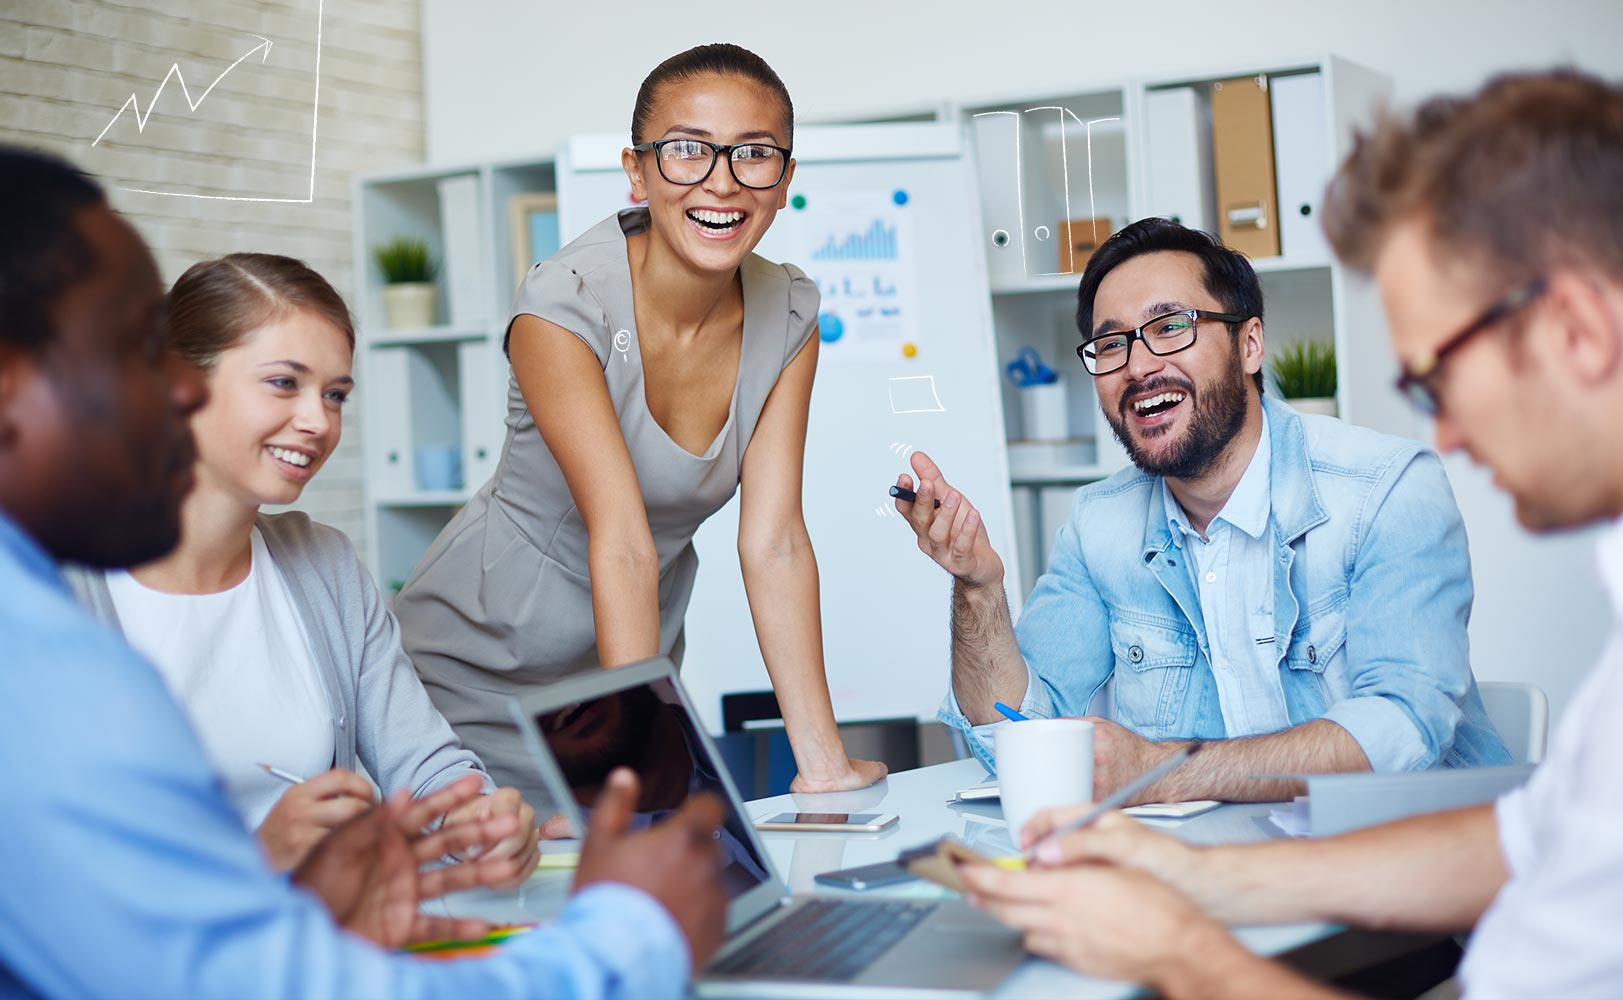 The Millennials are Taking Over! Workplace Benefits for the Younger Generation